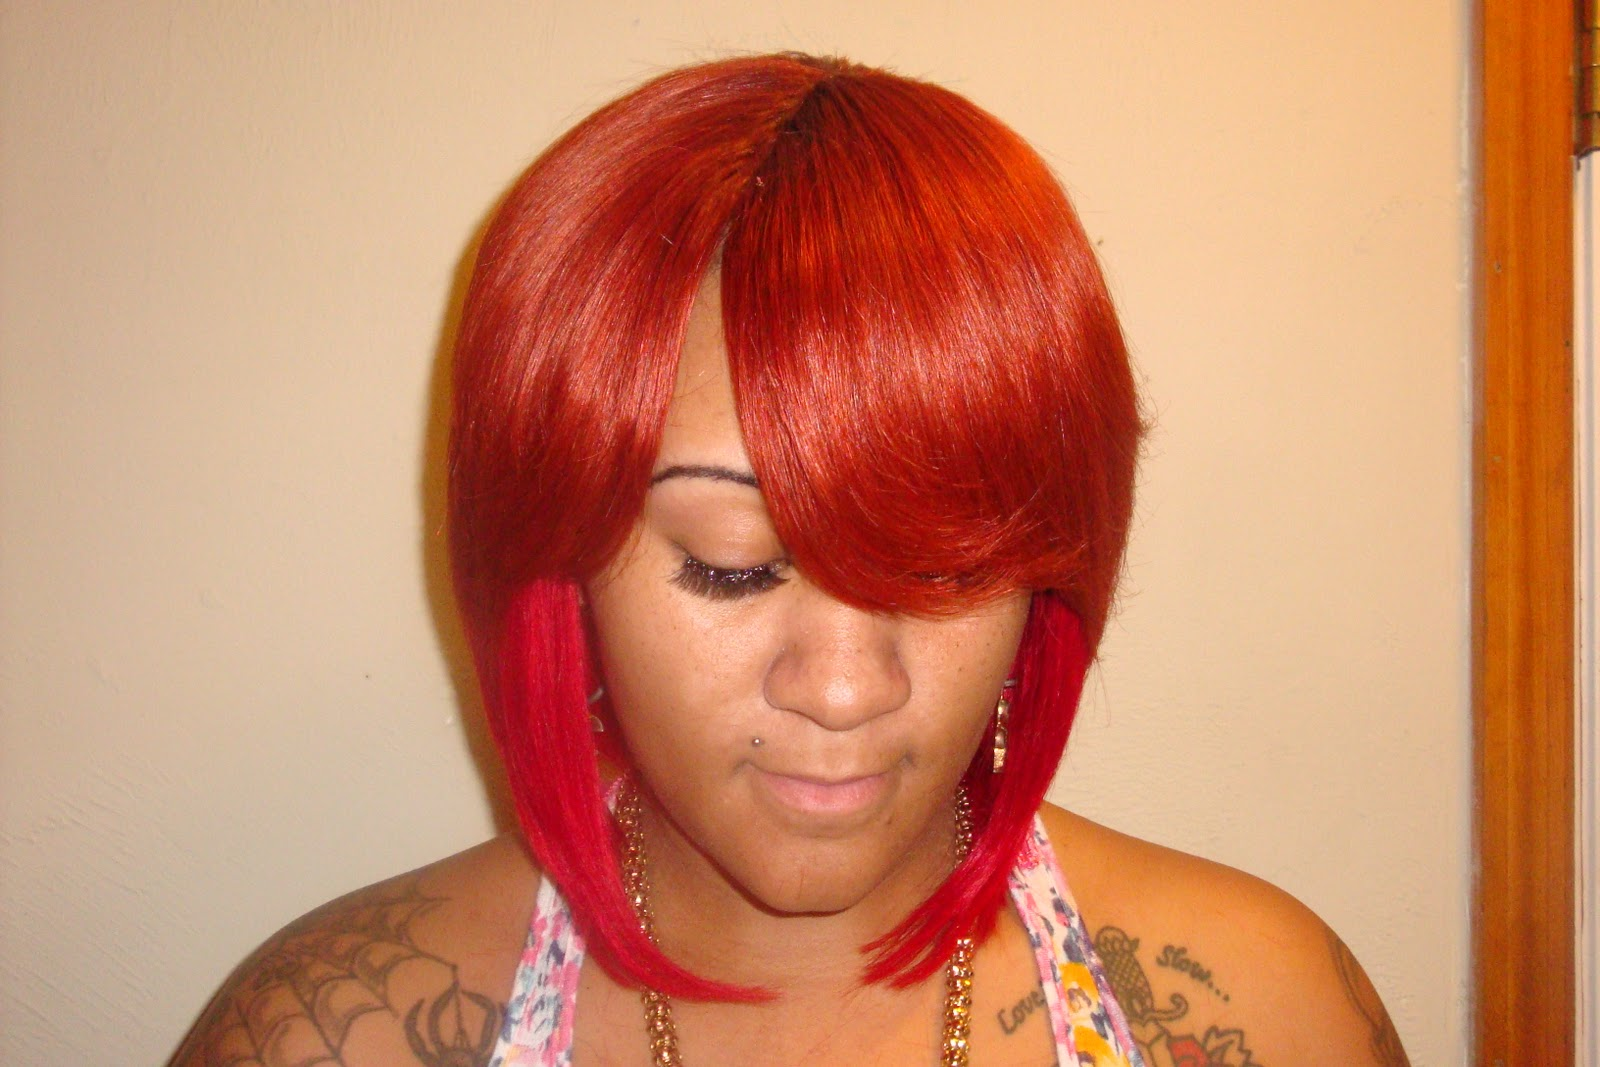 Sew in Bob with Bangs http://yinkasdesign.blogspot.com/2011/12/head-turners.html